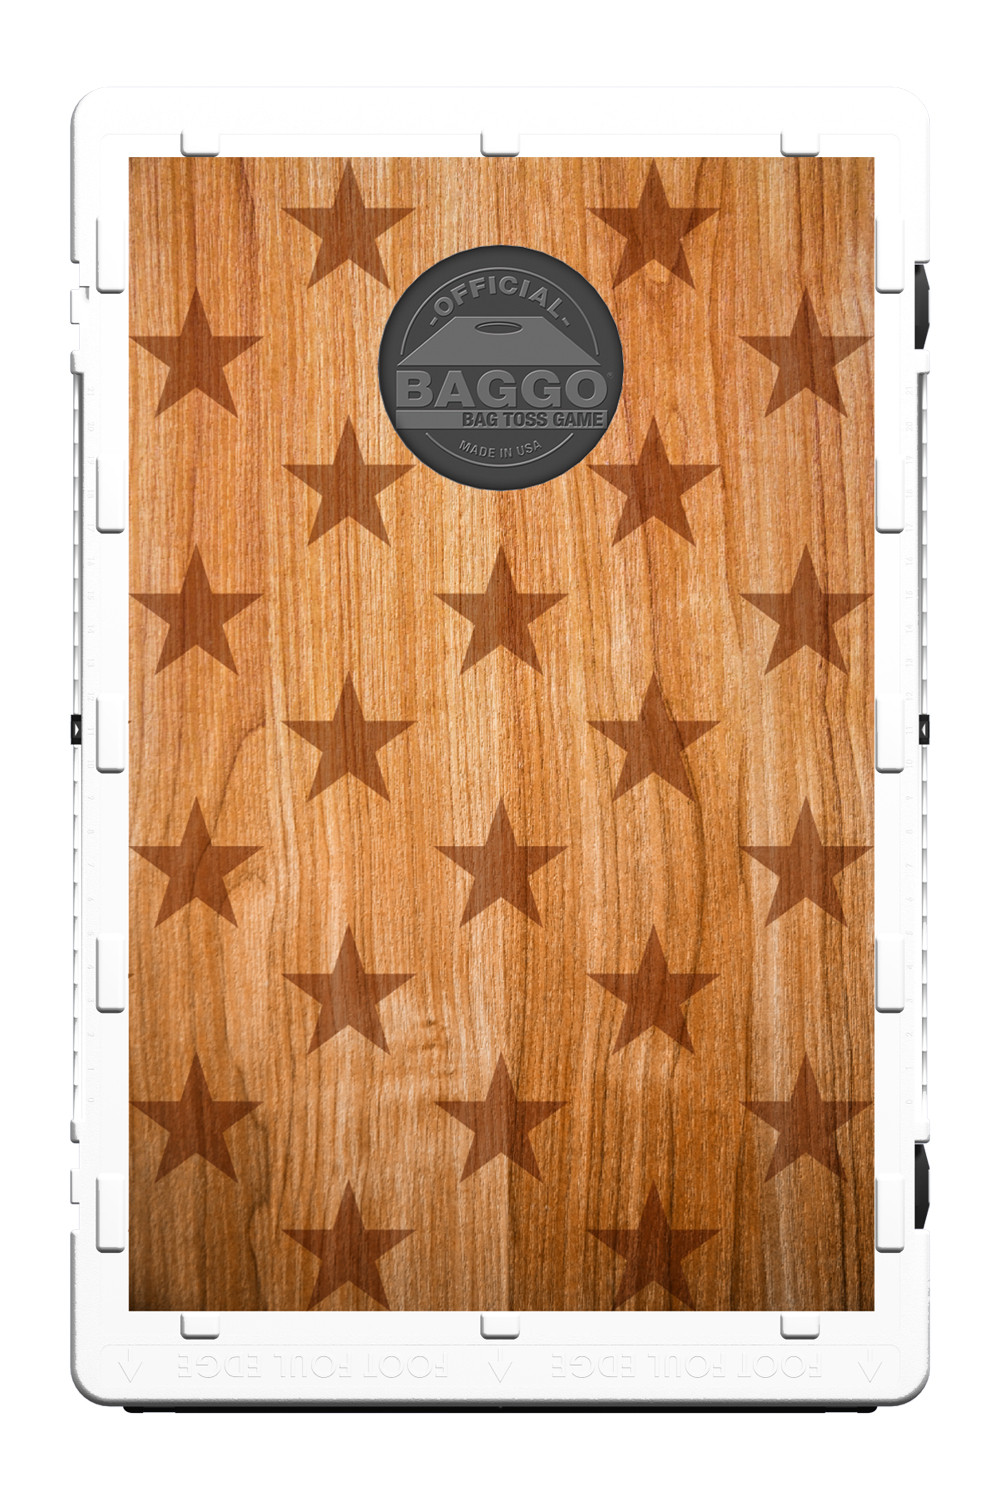 Patriotic Timber Screens (only) by Baggo